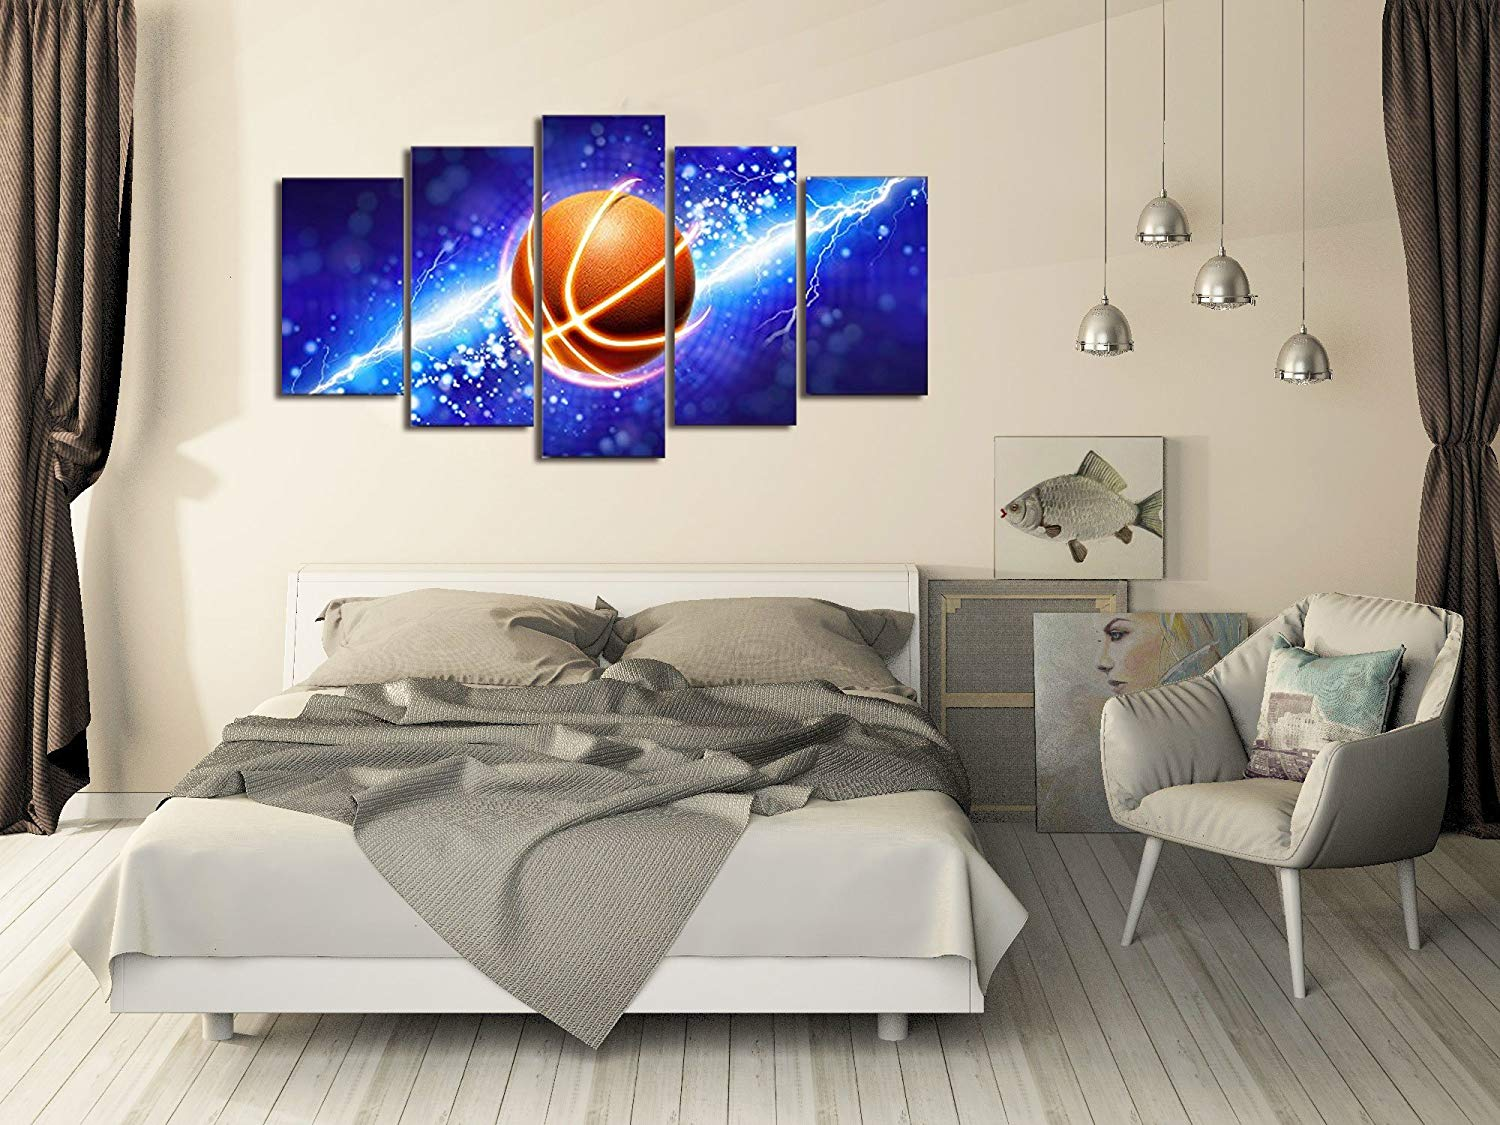 Home Décor Sporting 3d Sport Football Art Wall Sticker Vinyl Decals Removable Living Bedroom Decor To Enjoy High Reputation In The International Market Wall Décor